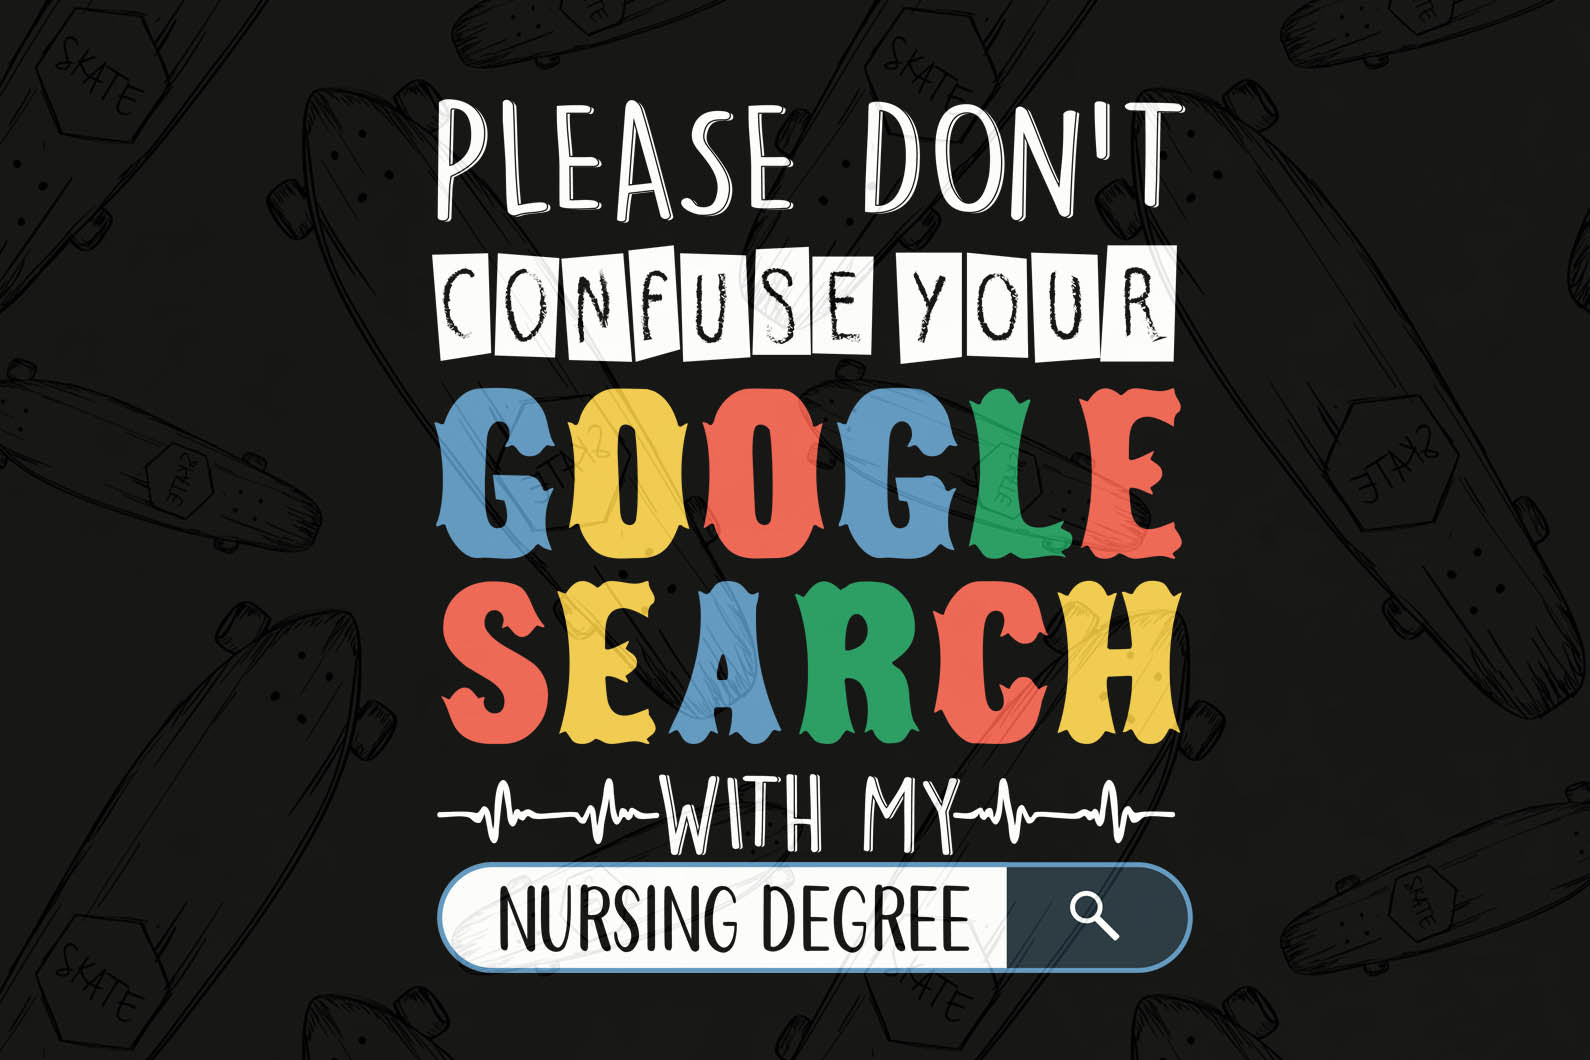 Please don't confuse your google search svg,nurse shirt,funny shirt,funny quotes,google search svg,motivational quote,digital file, vinyl for cricut, svg cut files, svg clipart, silhouette svg, cricut svg file